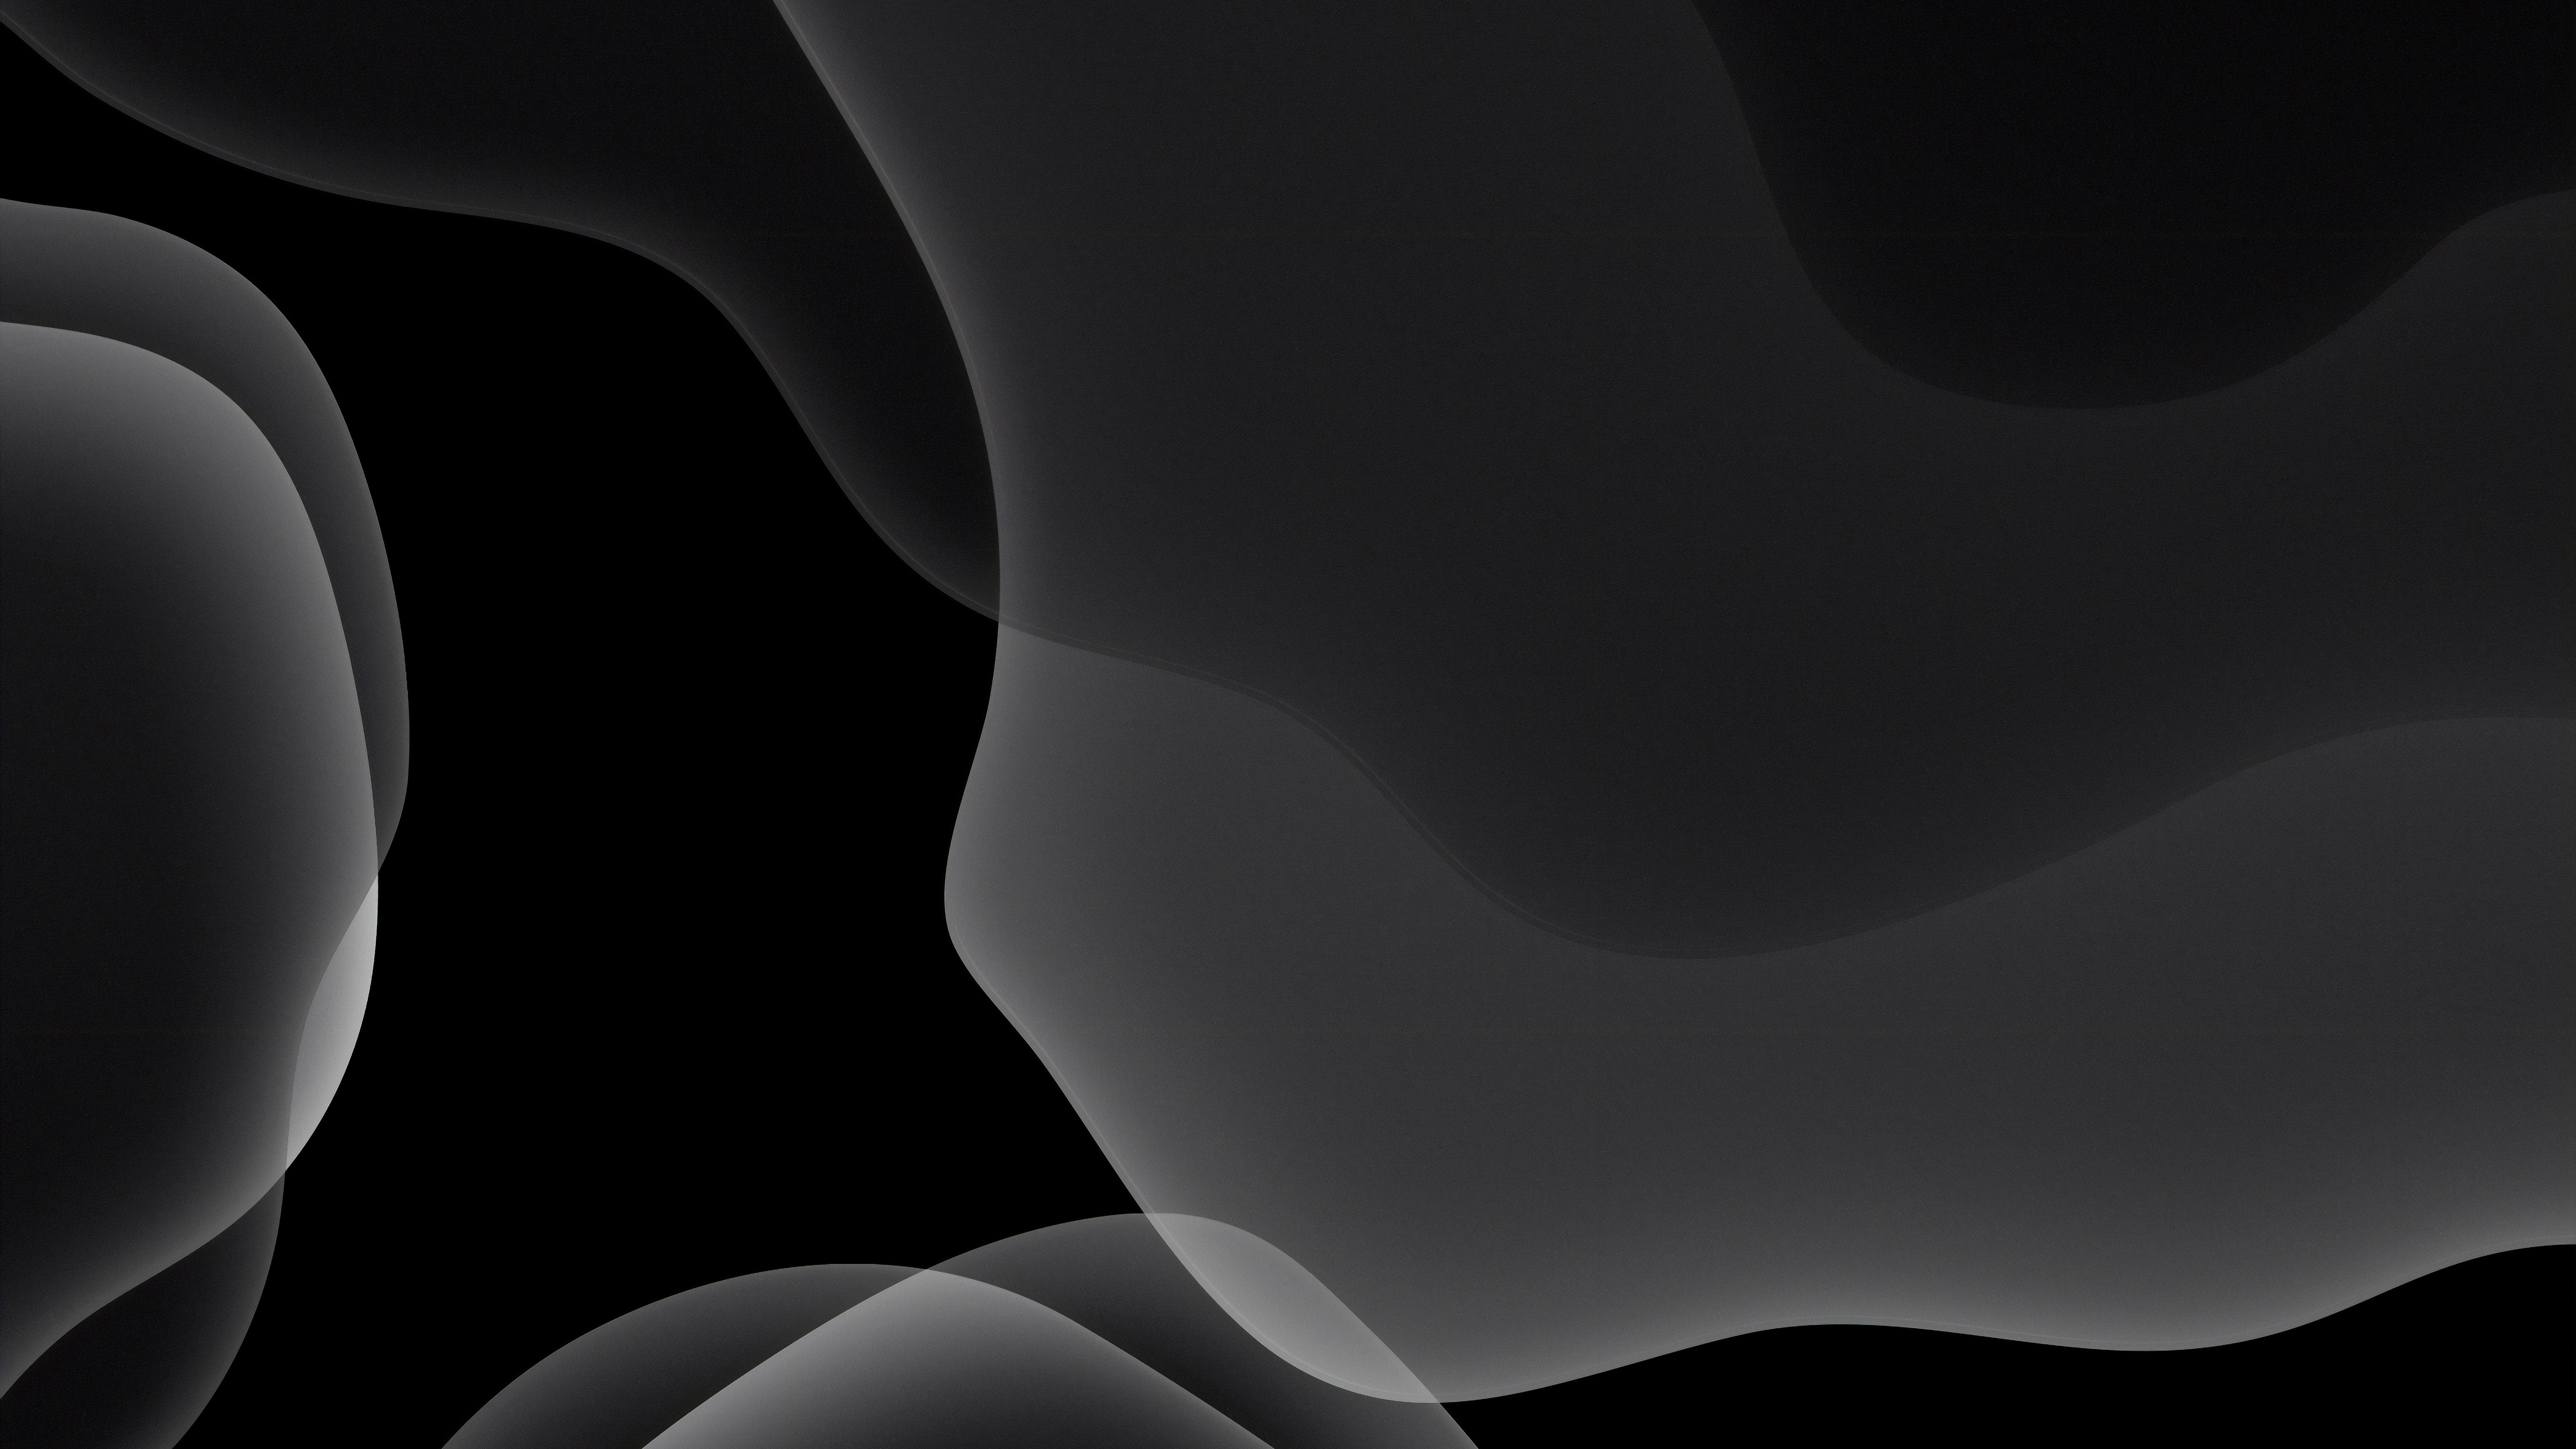 Ios 13 Grey Dark 5k Hd Computer 4k Wallpapers Images Backgrounds Photos And Pictures